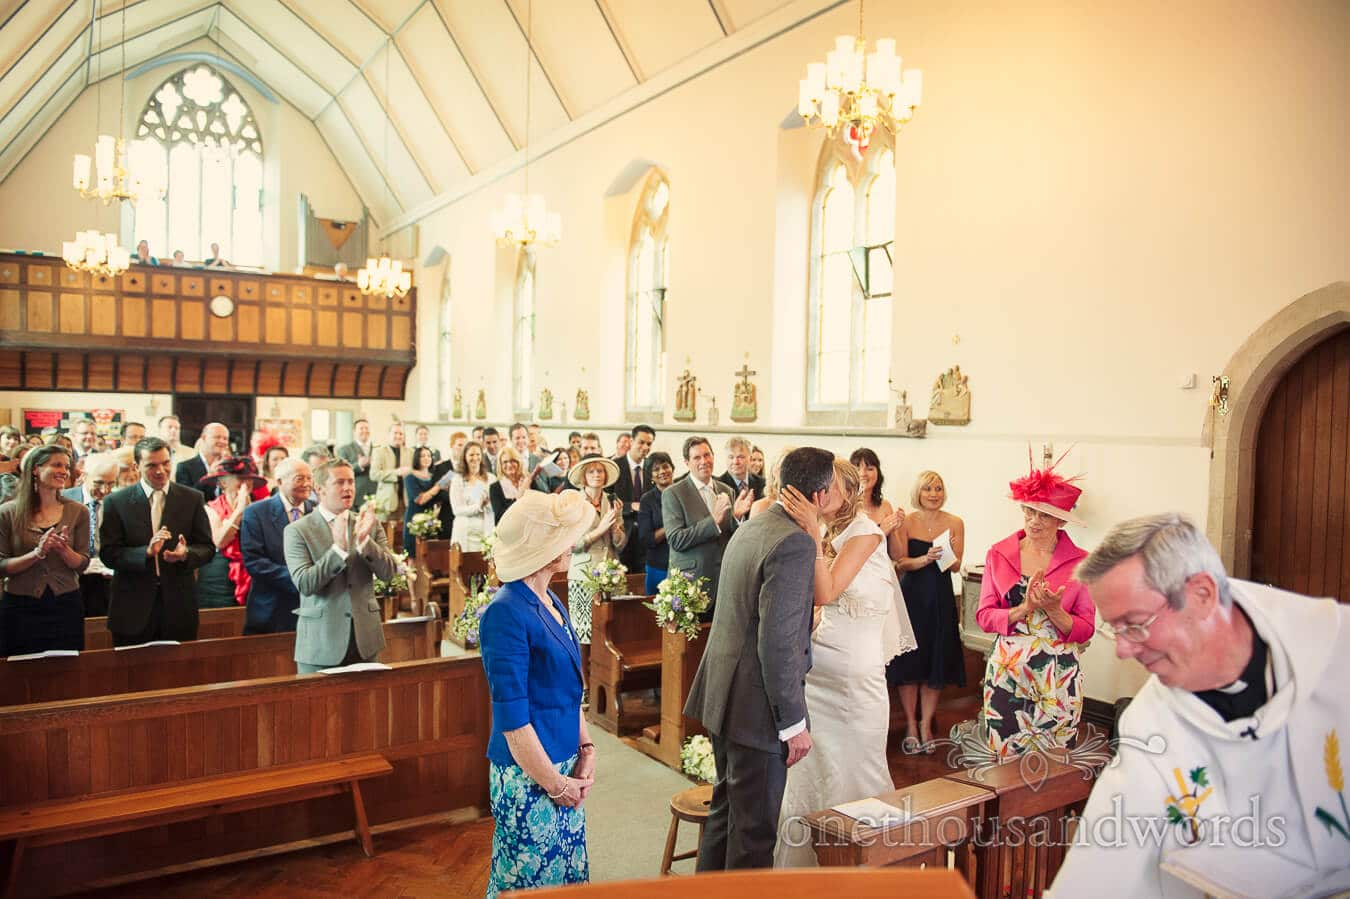 First kiss at church wedding ceremony in Swanage, Dorset